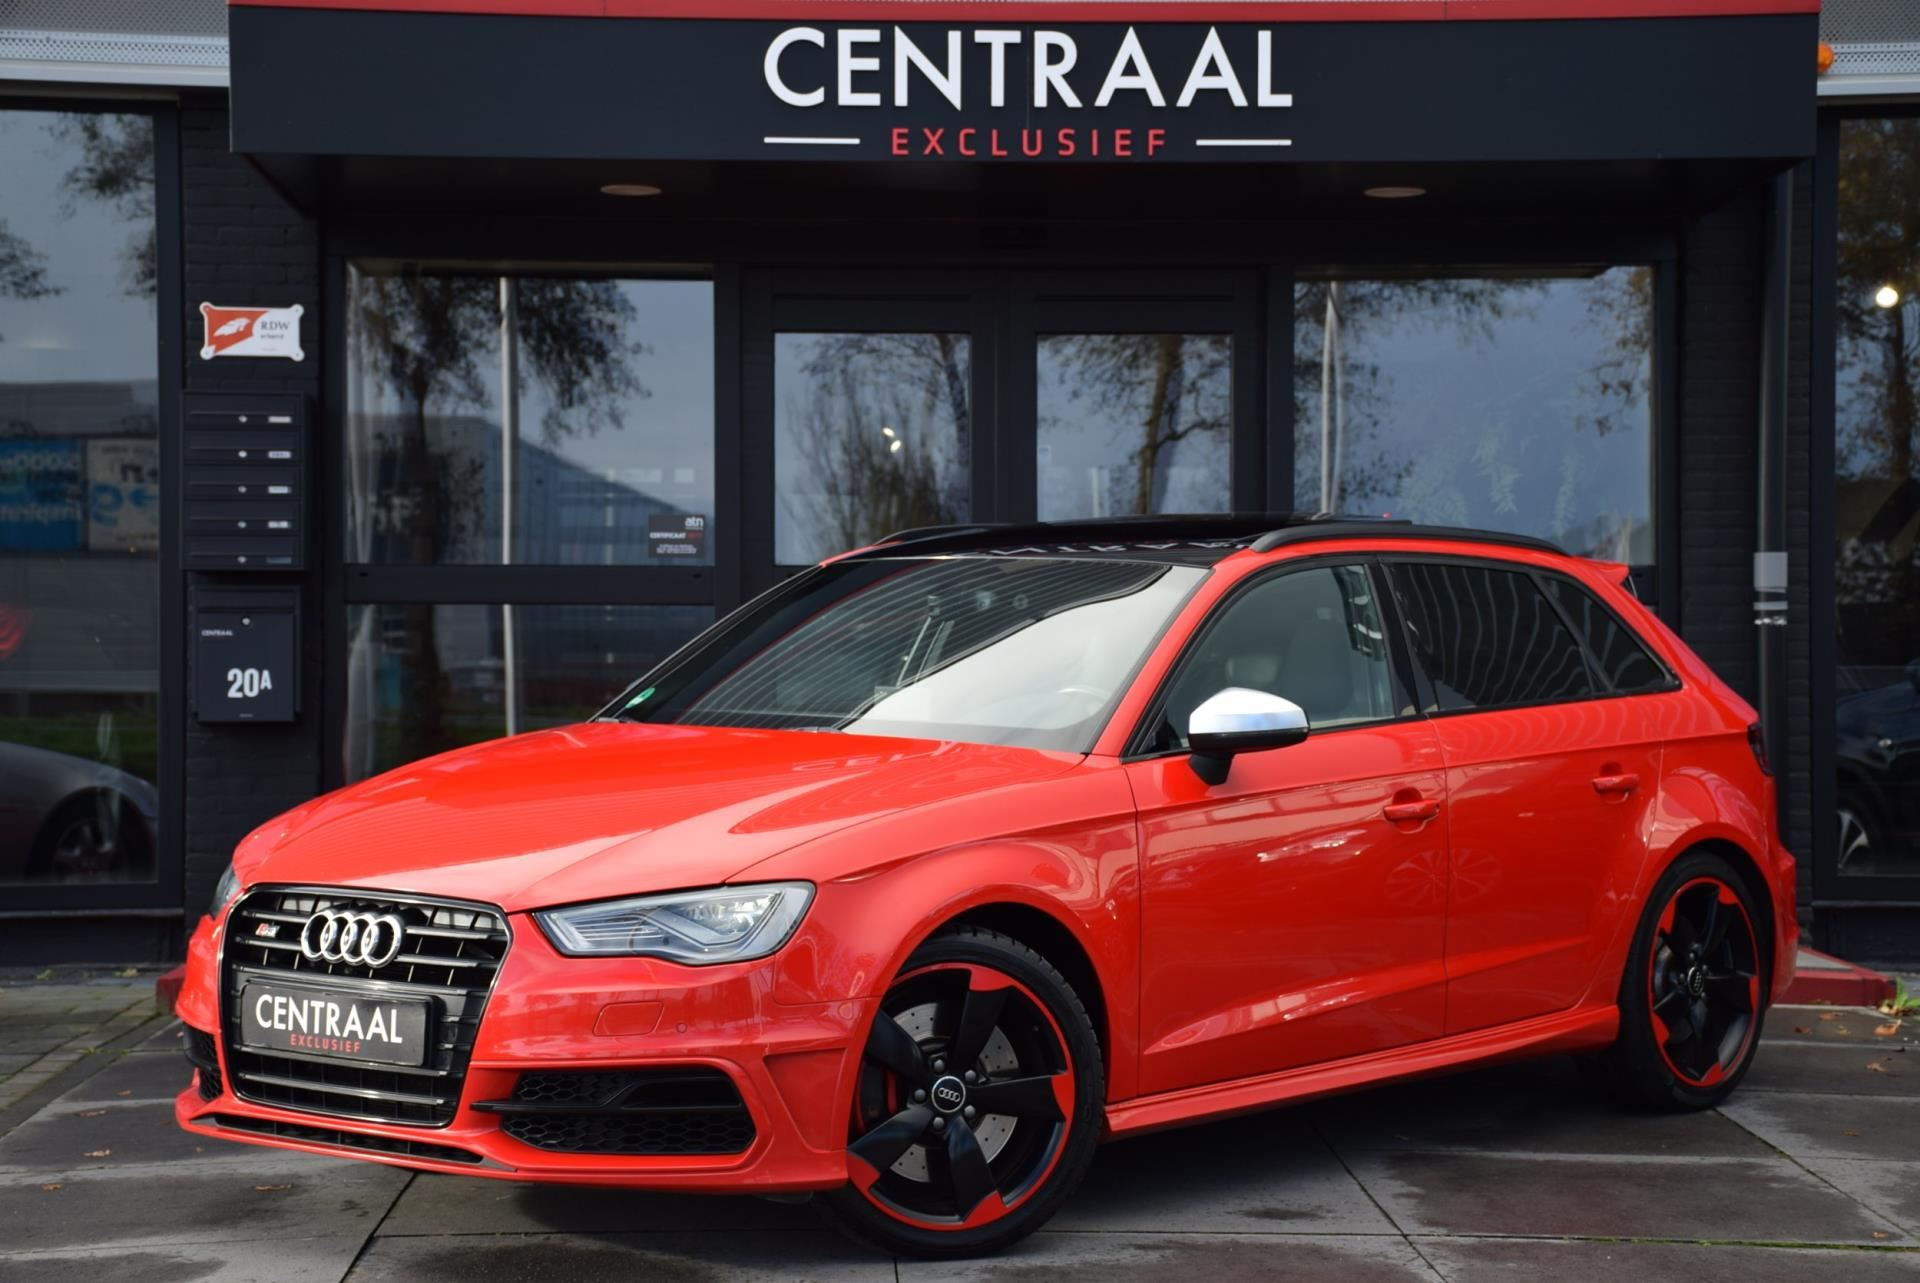 Audi S3 occasion - Centraal Exclusief B.V.